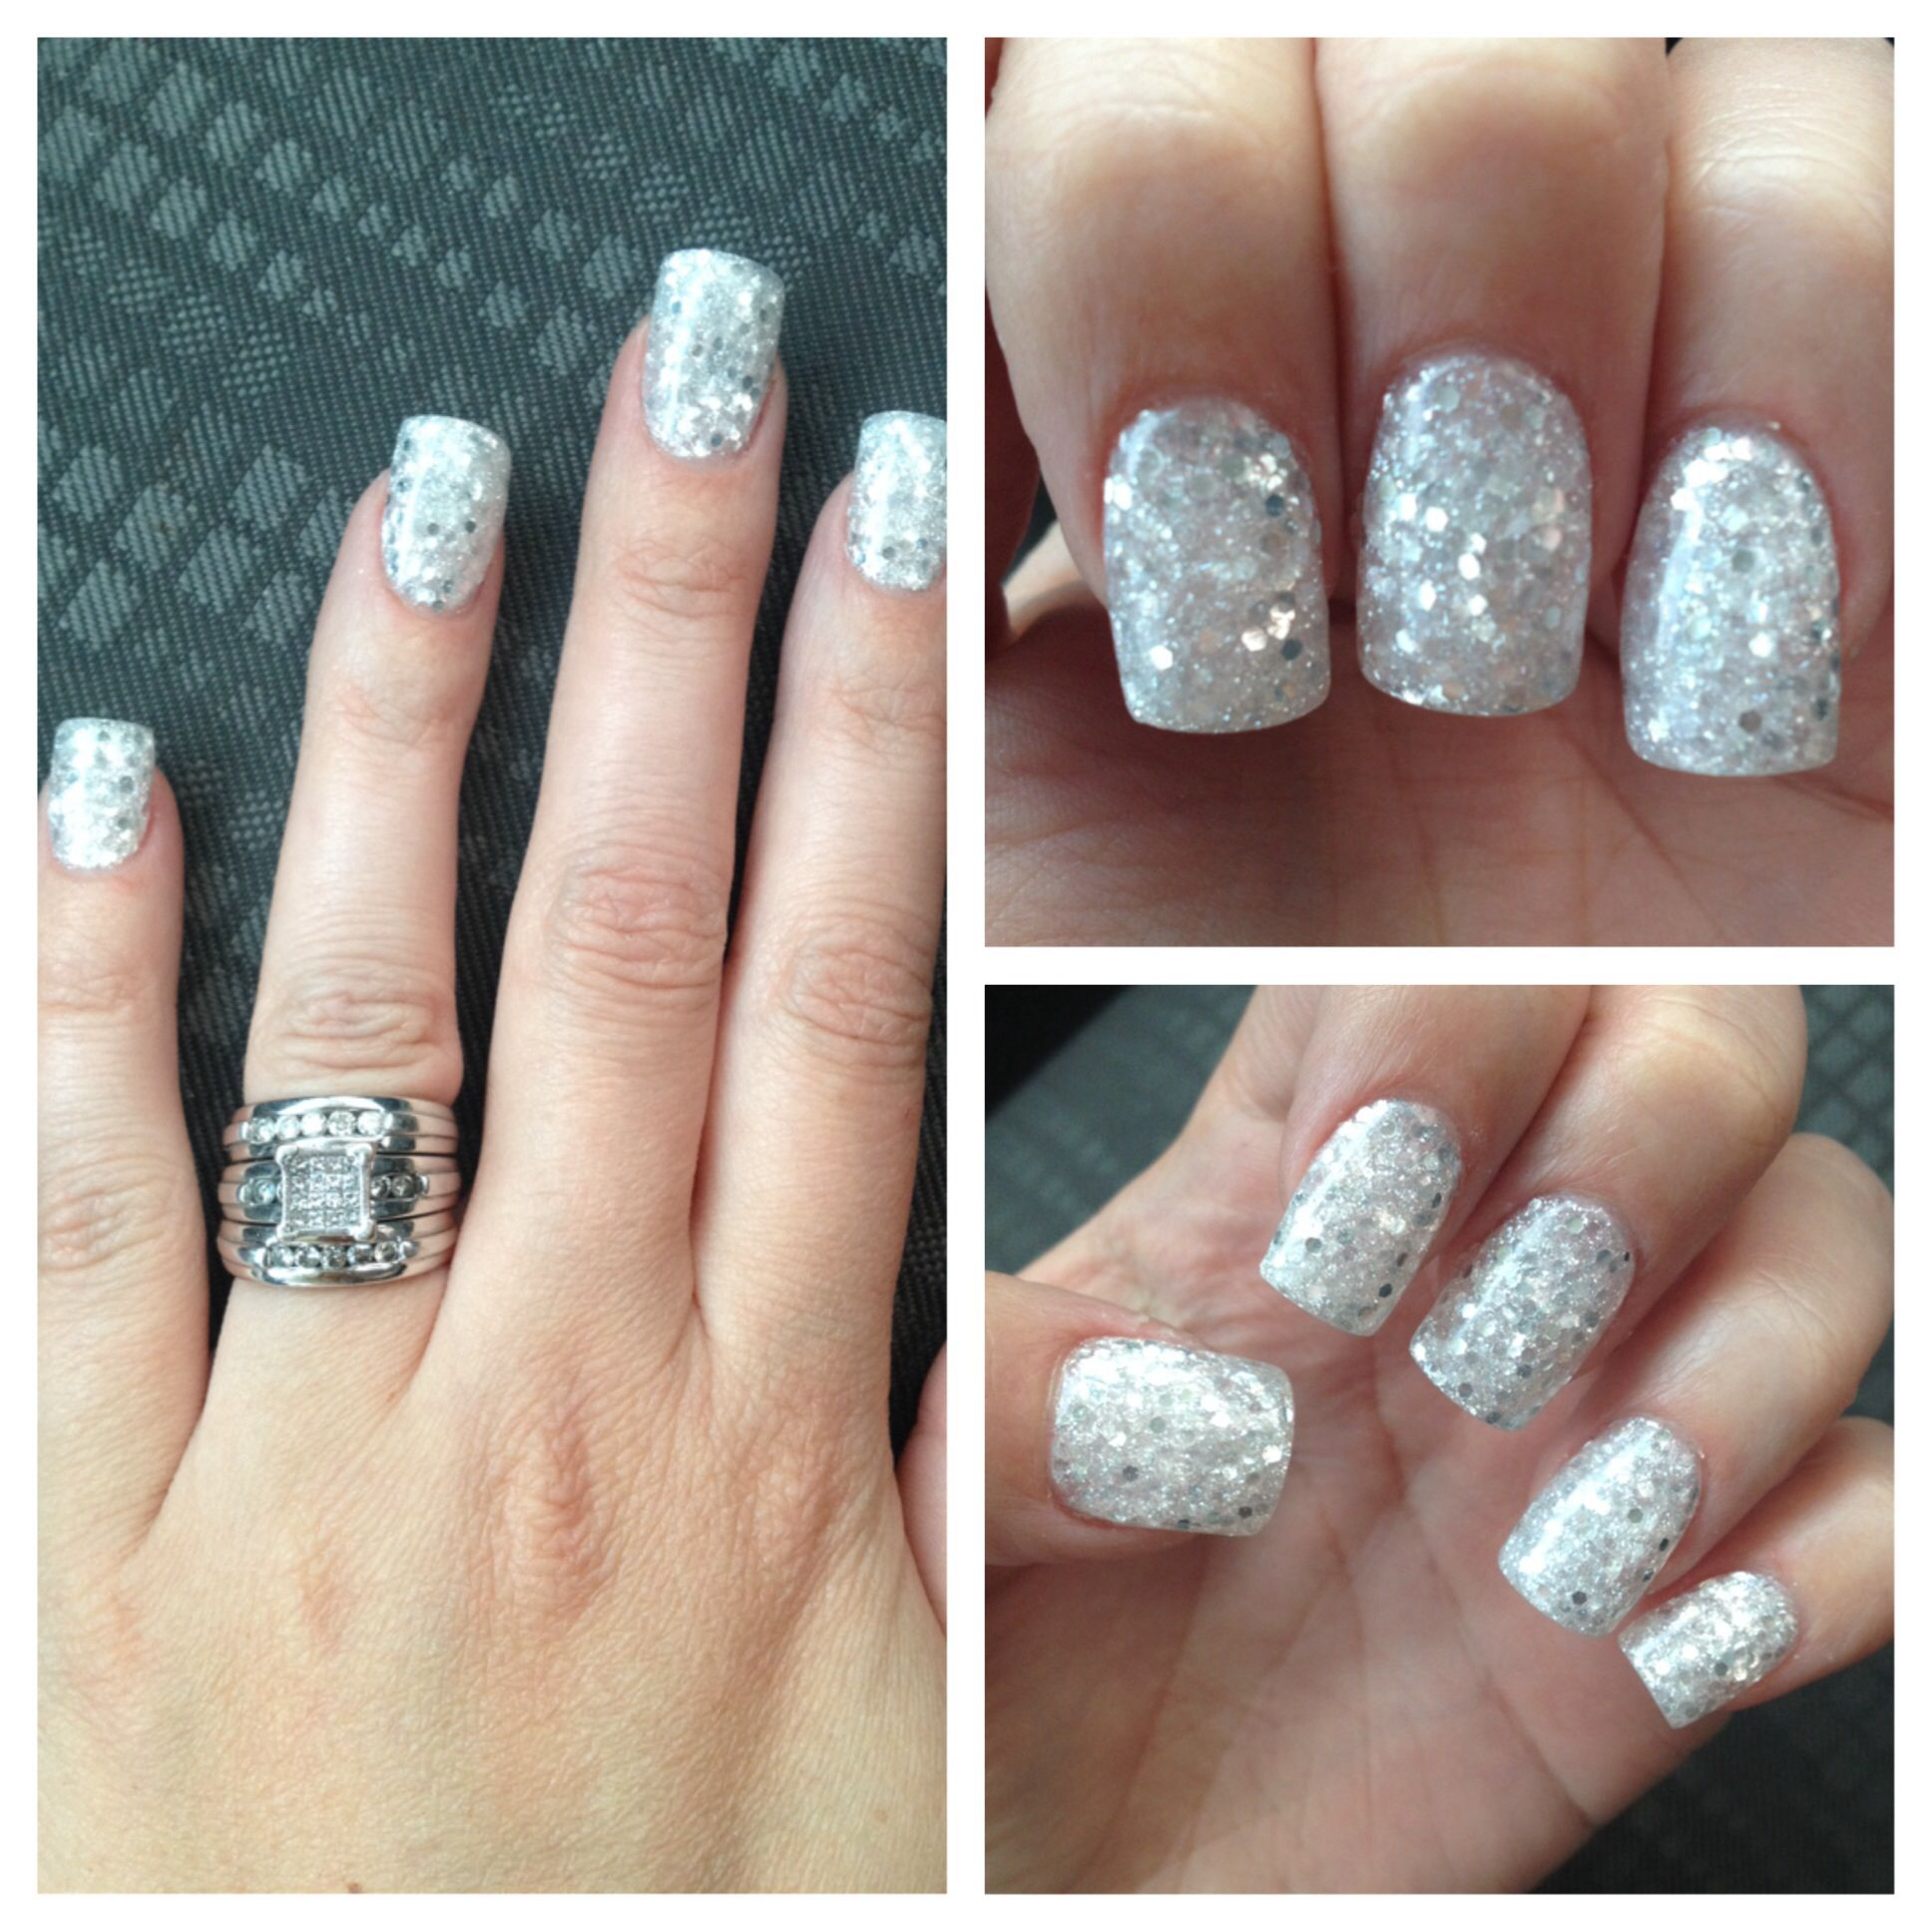 White And Silver For Prom Nail Ideas: White/Silver Glitter Acrylic Nails!